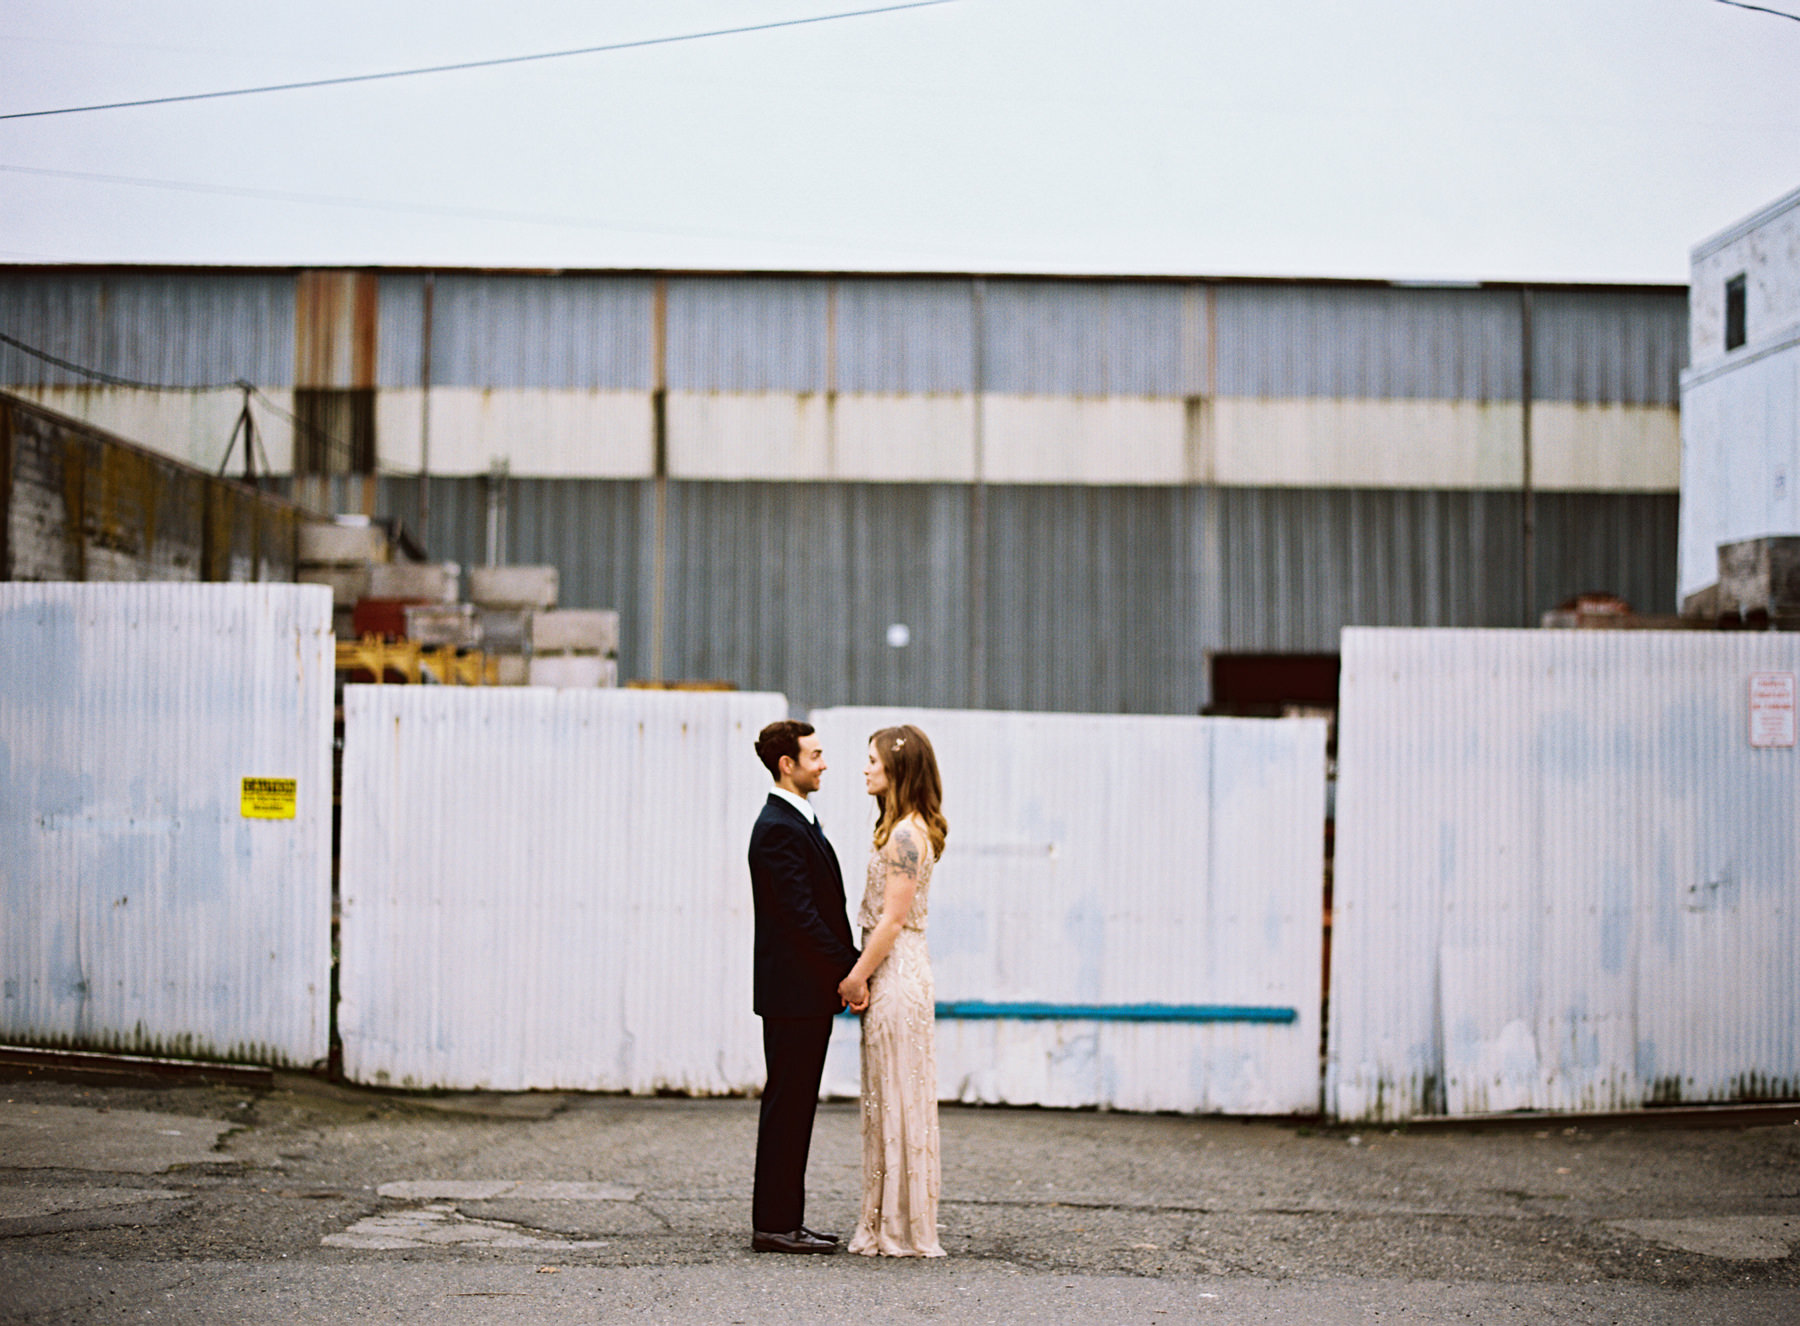 051-urban-wedding-portraits-by-film-photographer-ryan-flynn-in-industrial-area.jpg